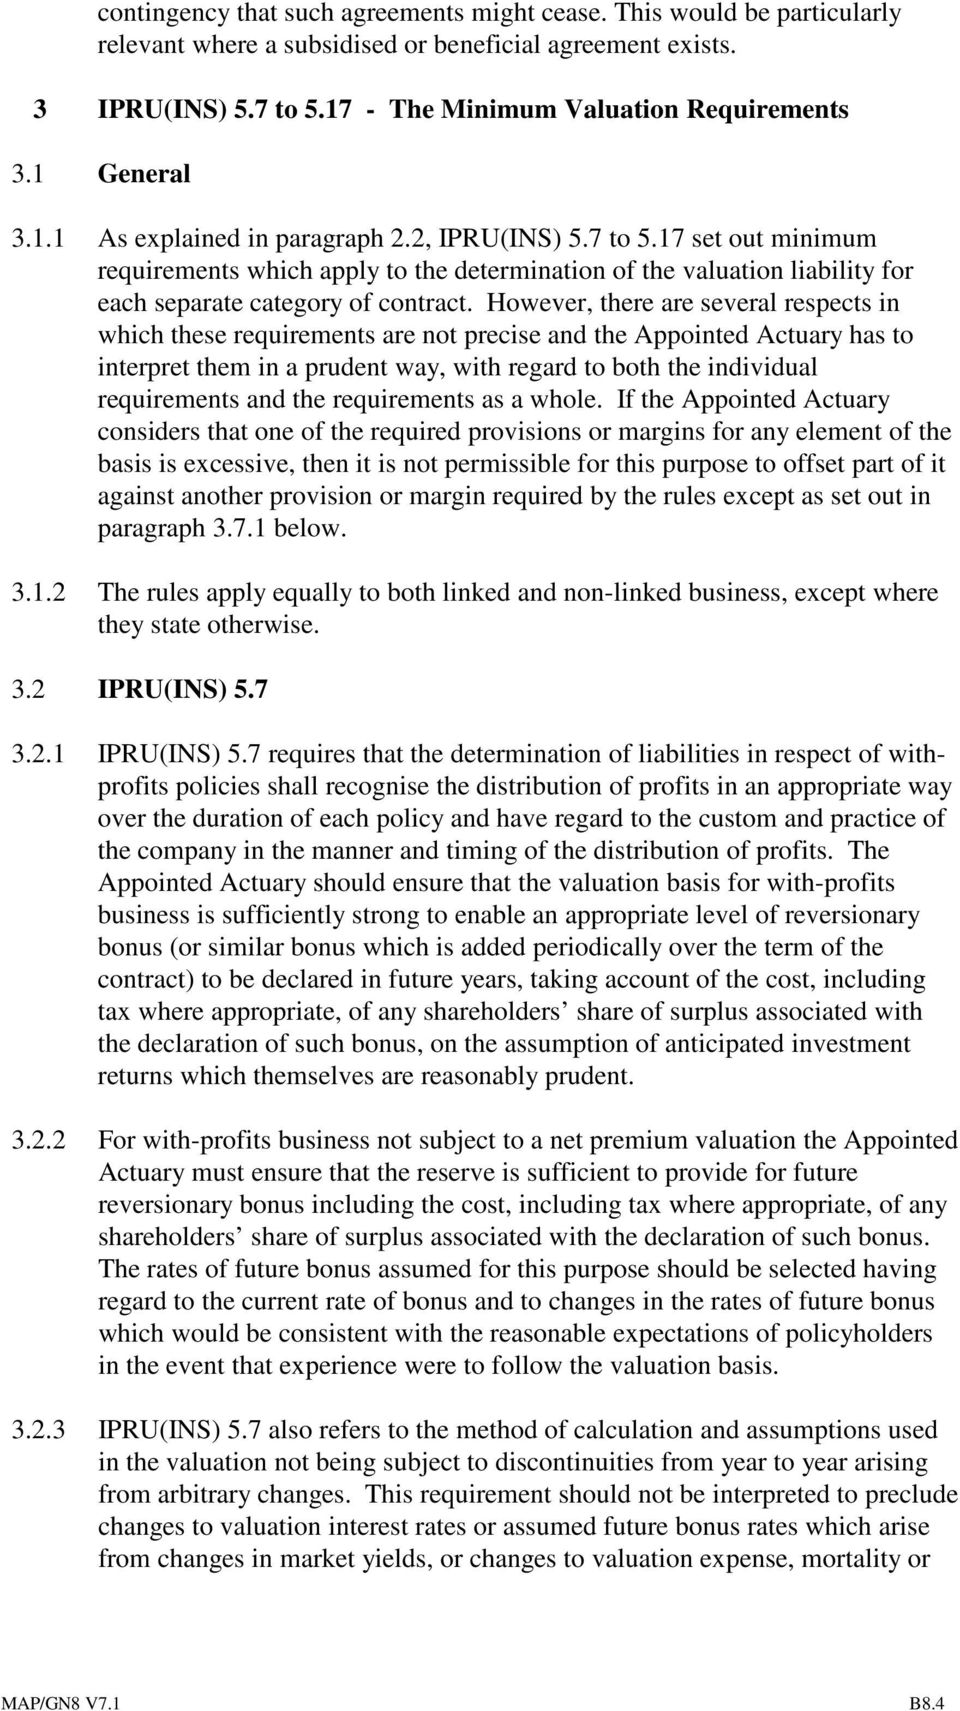 However, there are several respects in which these requirements are not precise and the Appointed Actuary has to interpret them in a prudent way, with regard to both the individual requirements and